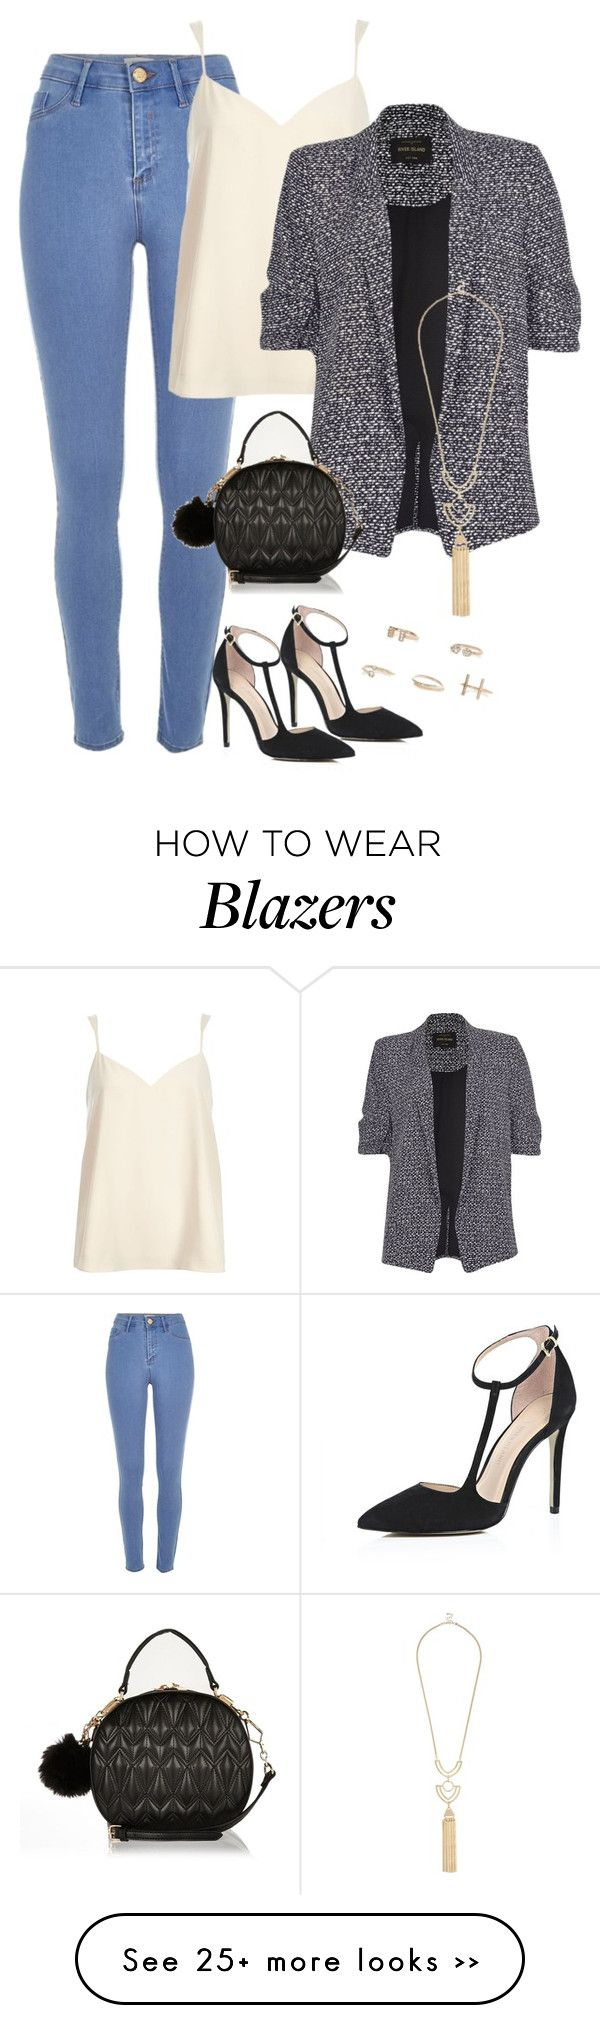 """""""Sophisticated look"""" by alwayswearwhatyouwanttowear on Polyvore featuring River Island, outfit, outfits and fashionset"""